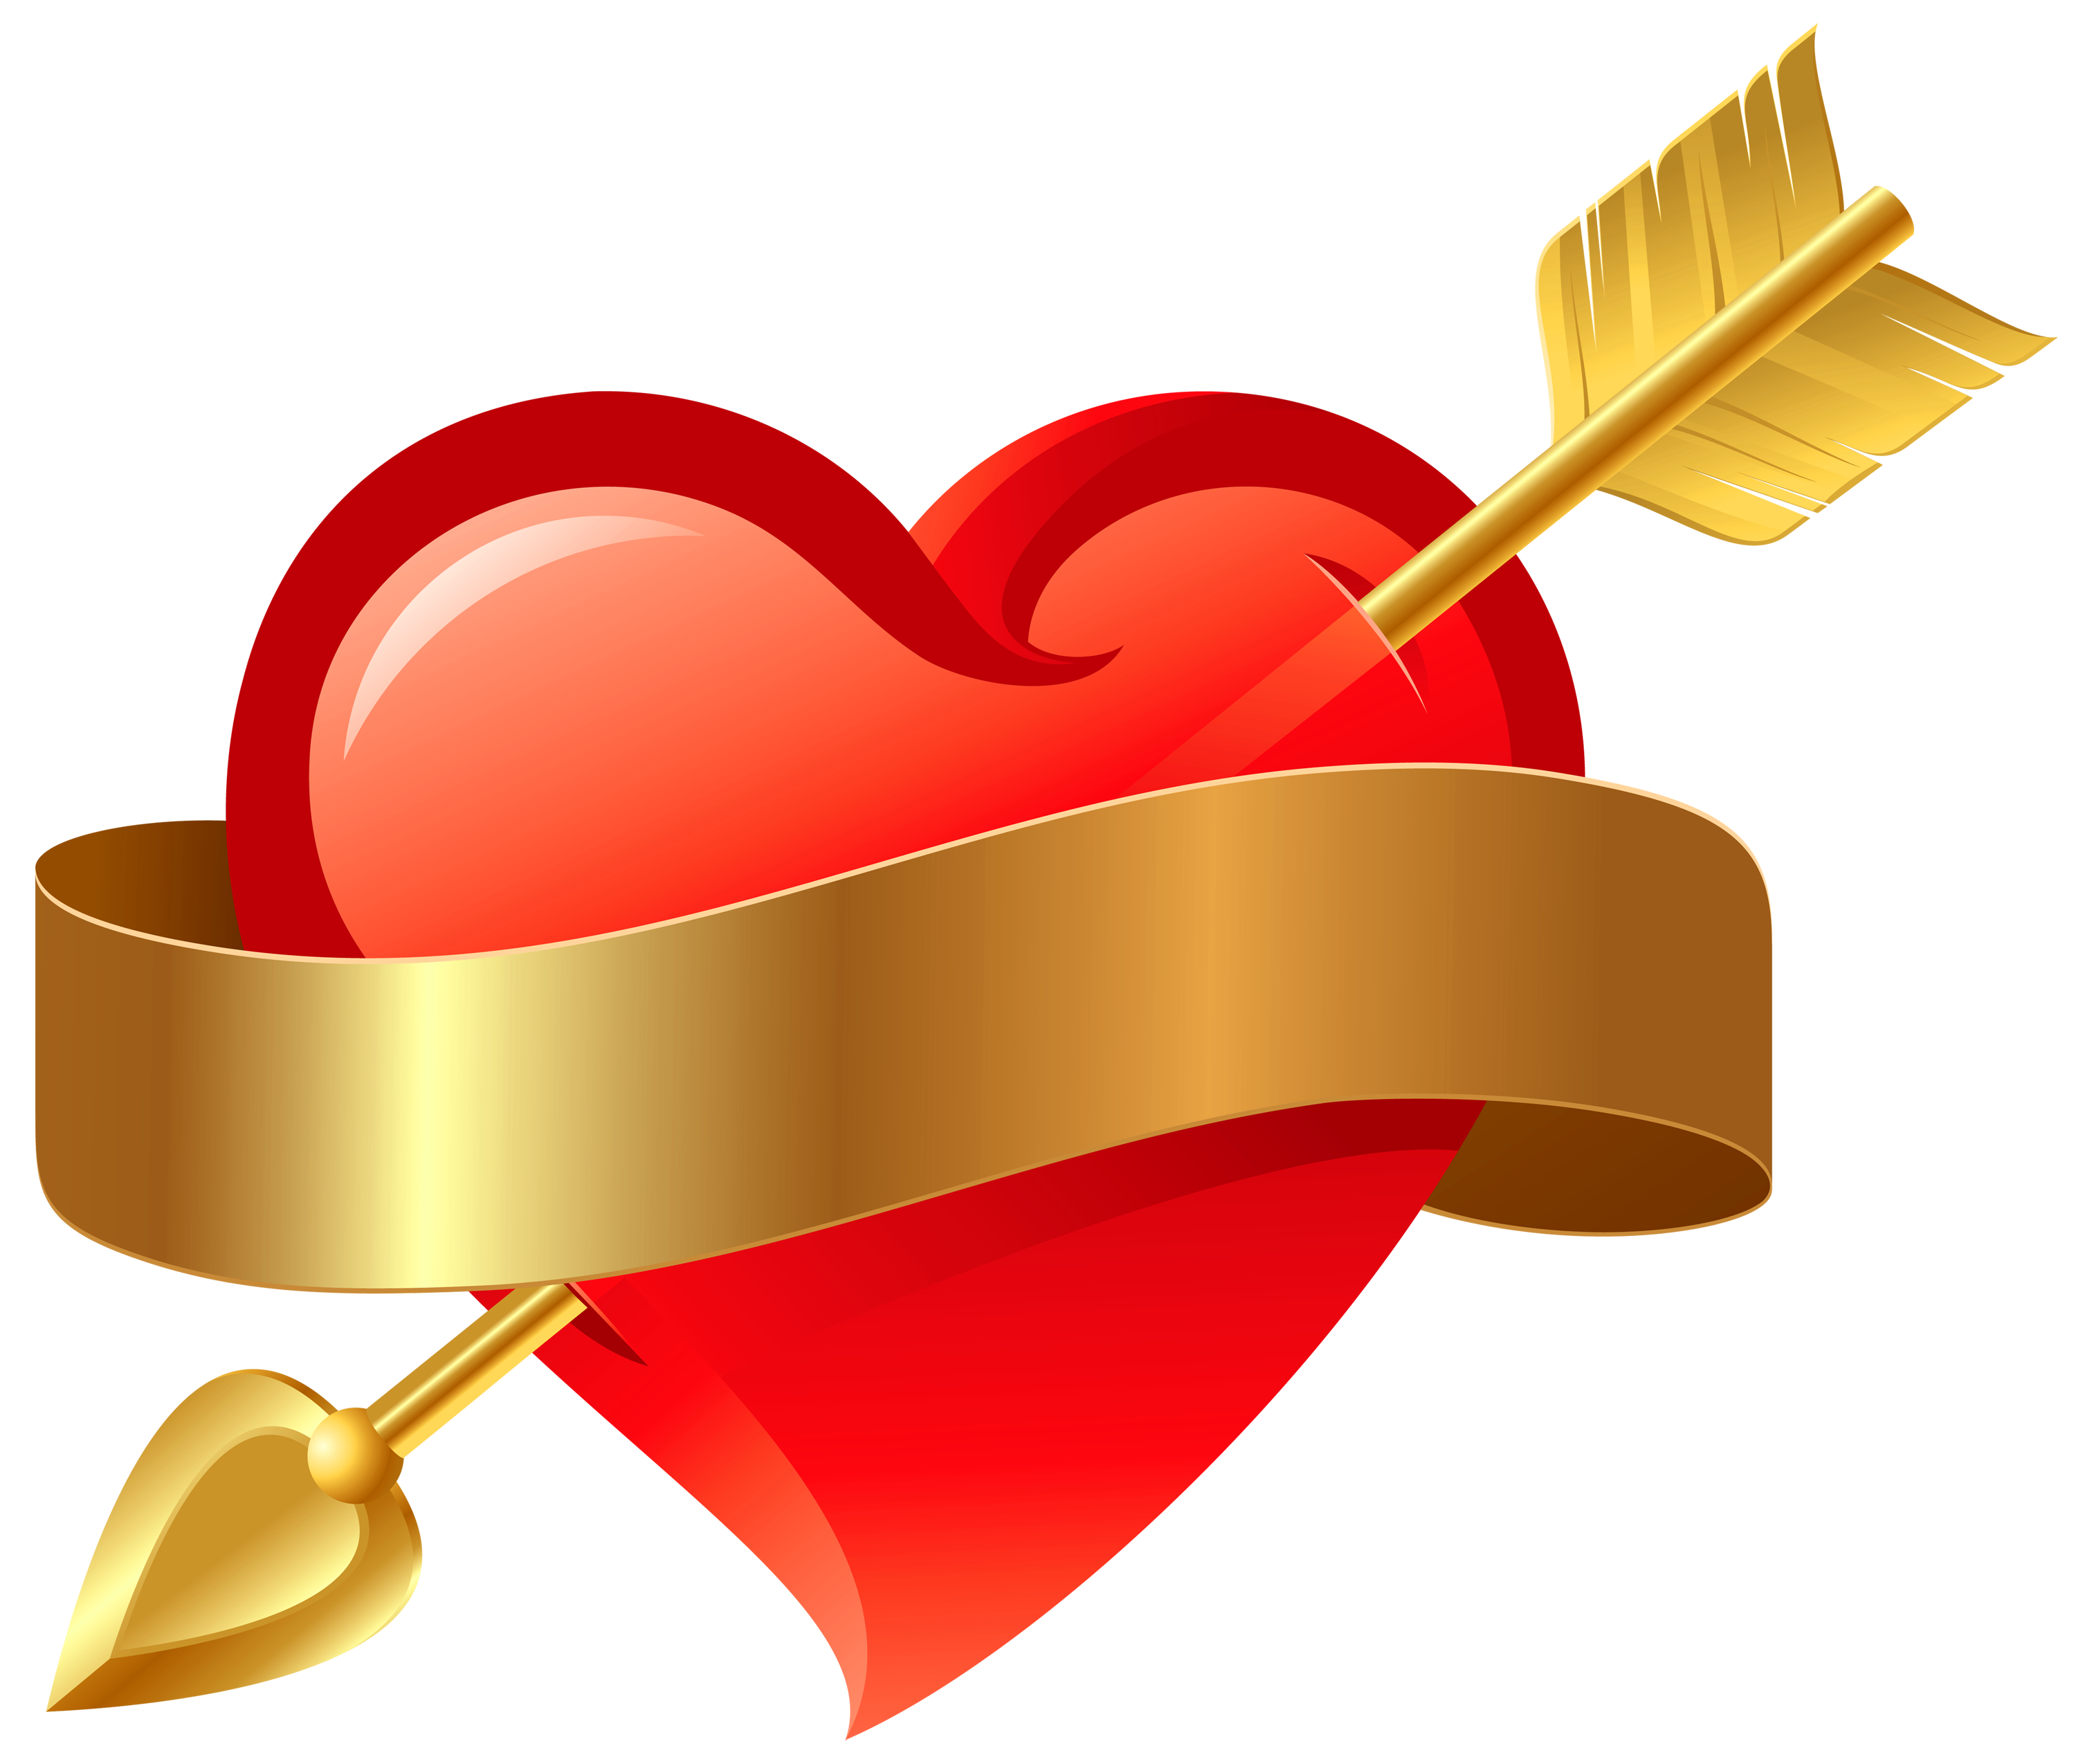 Free clipart heart with arrow graphic royalty free library Heart Png With Arrow Transparent graphic royalty free library